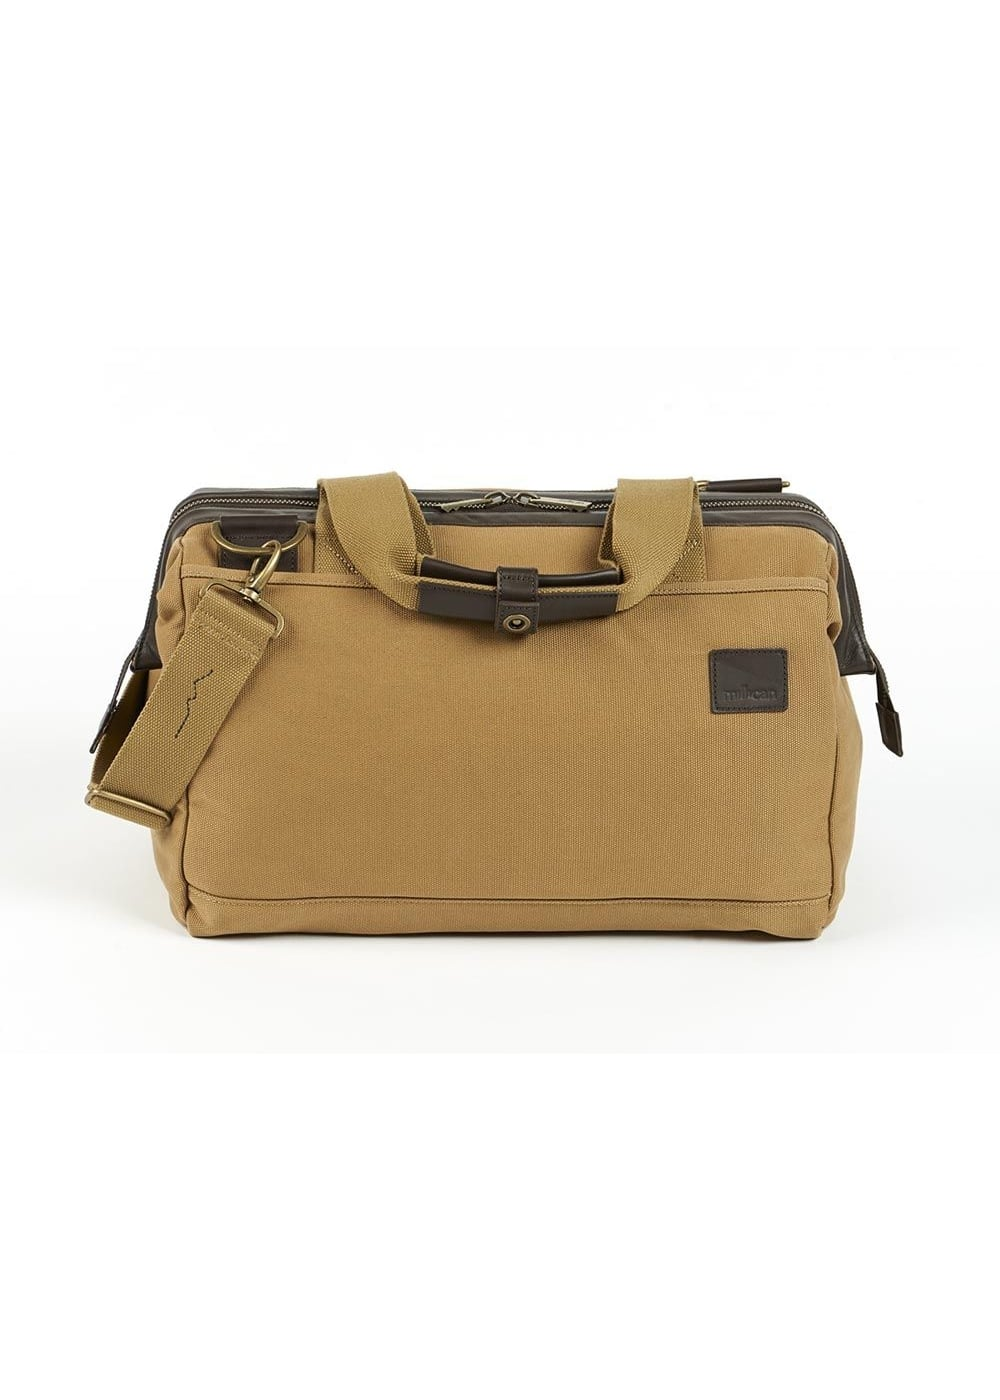 Millican Harry the Small Gladstone Bag  Large Image